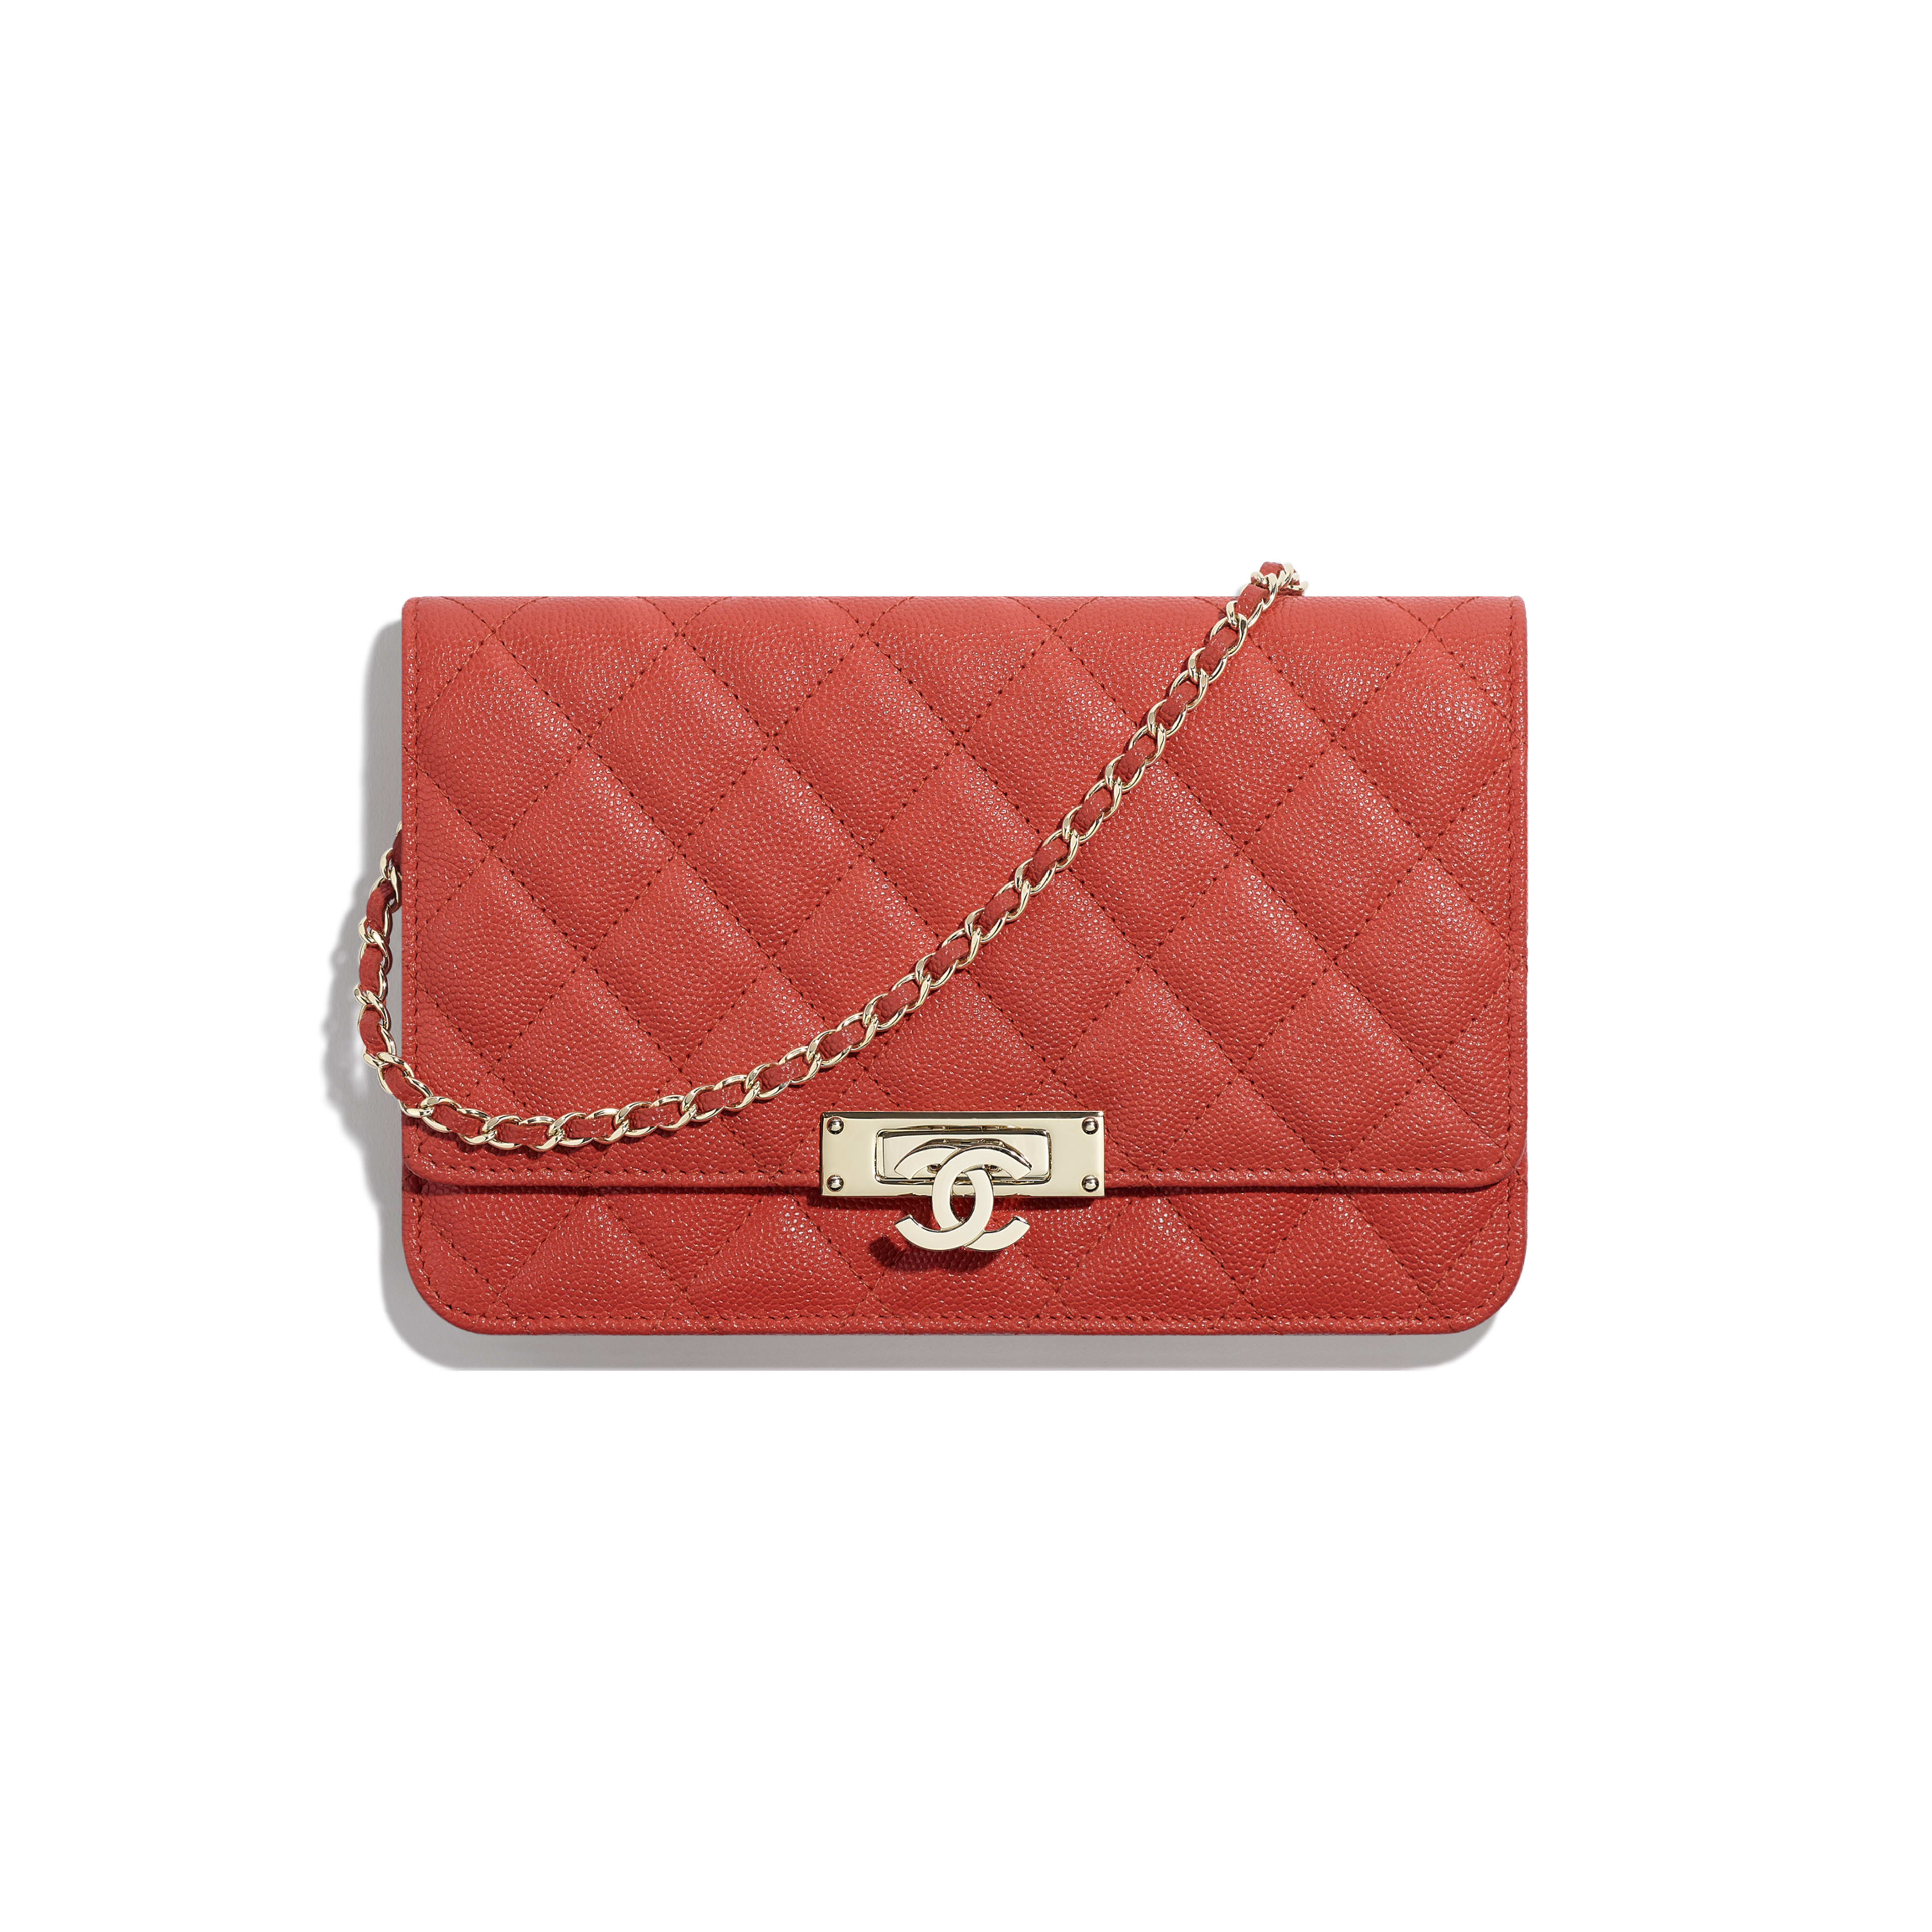 Wallet on Chain - Red - Grained Goatskin & Gold-Tone Metal - Default view - see full sized version